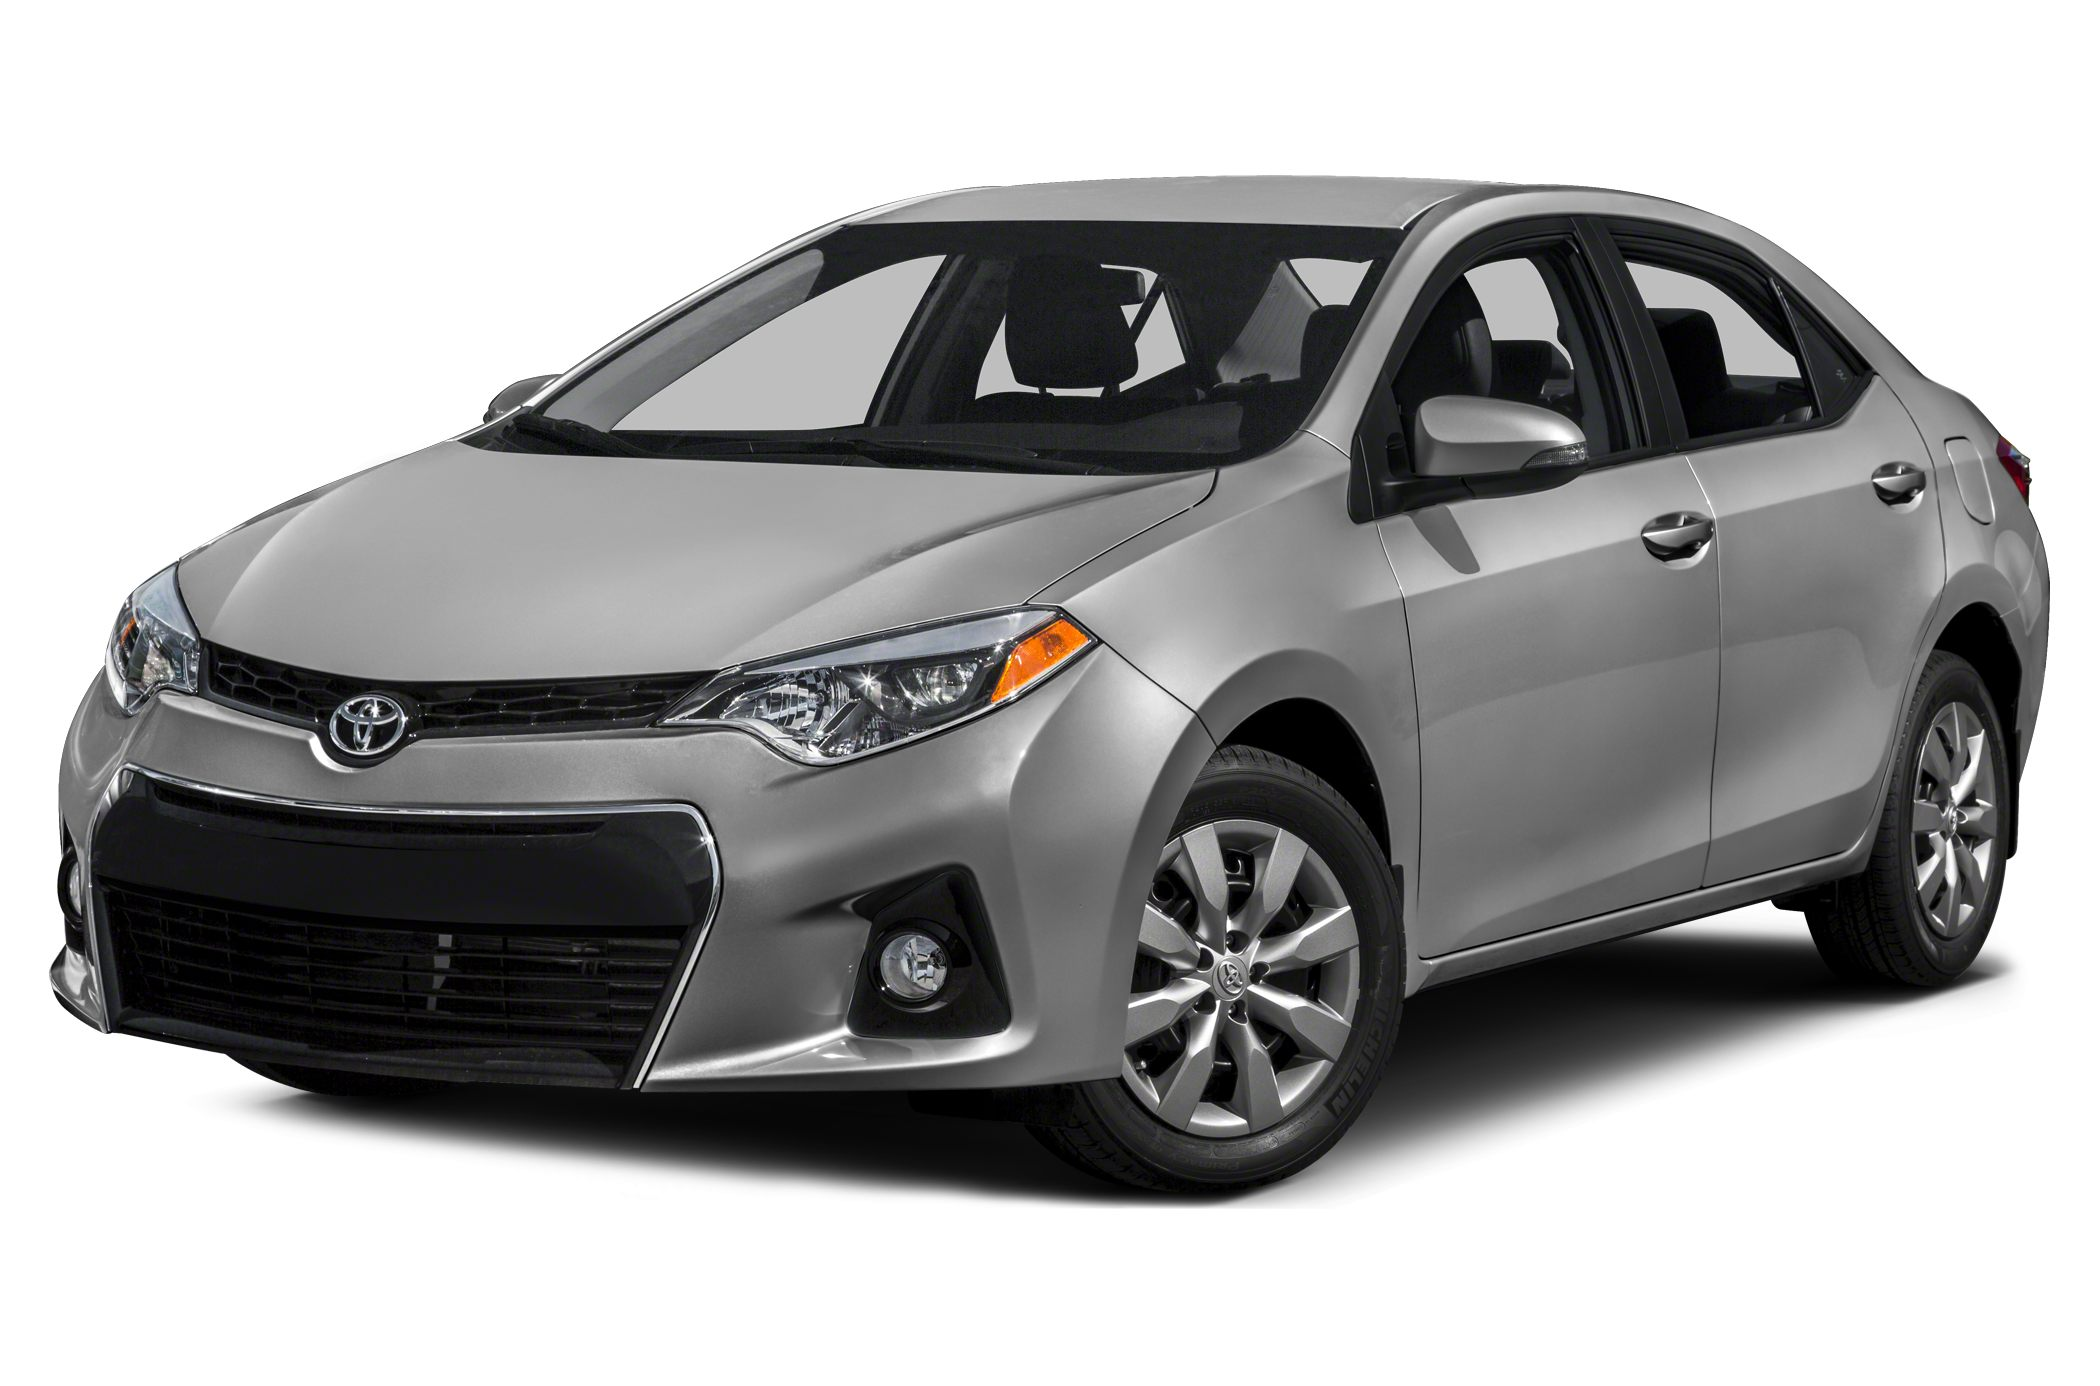 2015 Toyota Corolla S Plus Sedan for sale in Baltimore for $21,745 with 0 miles.